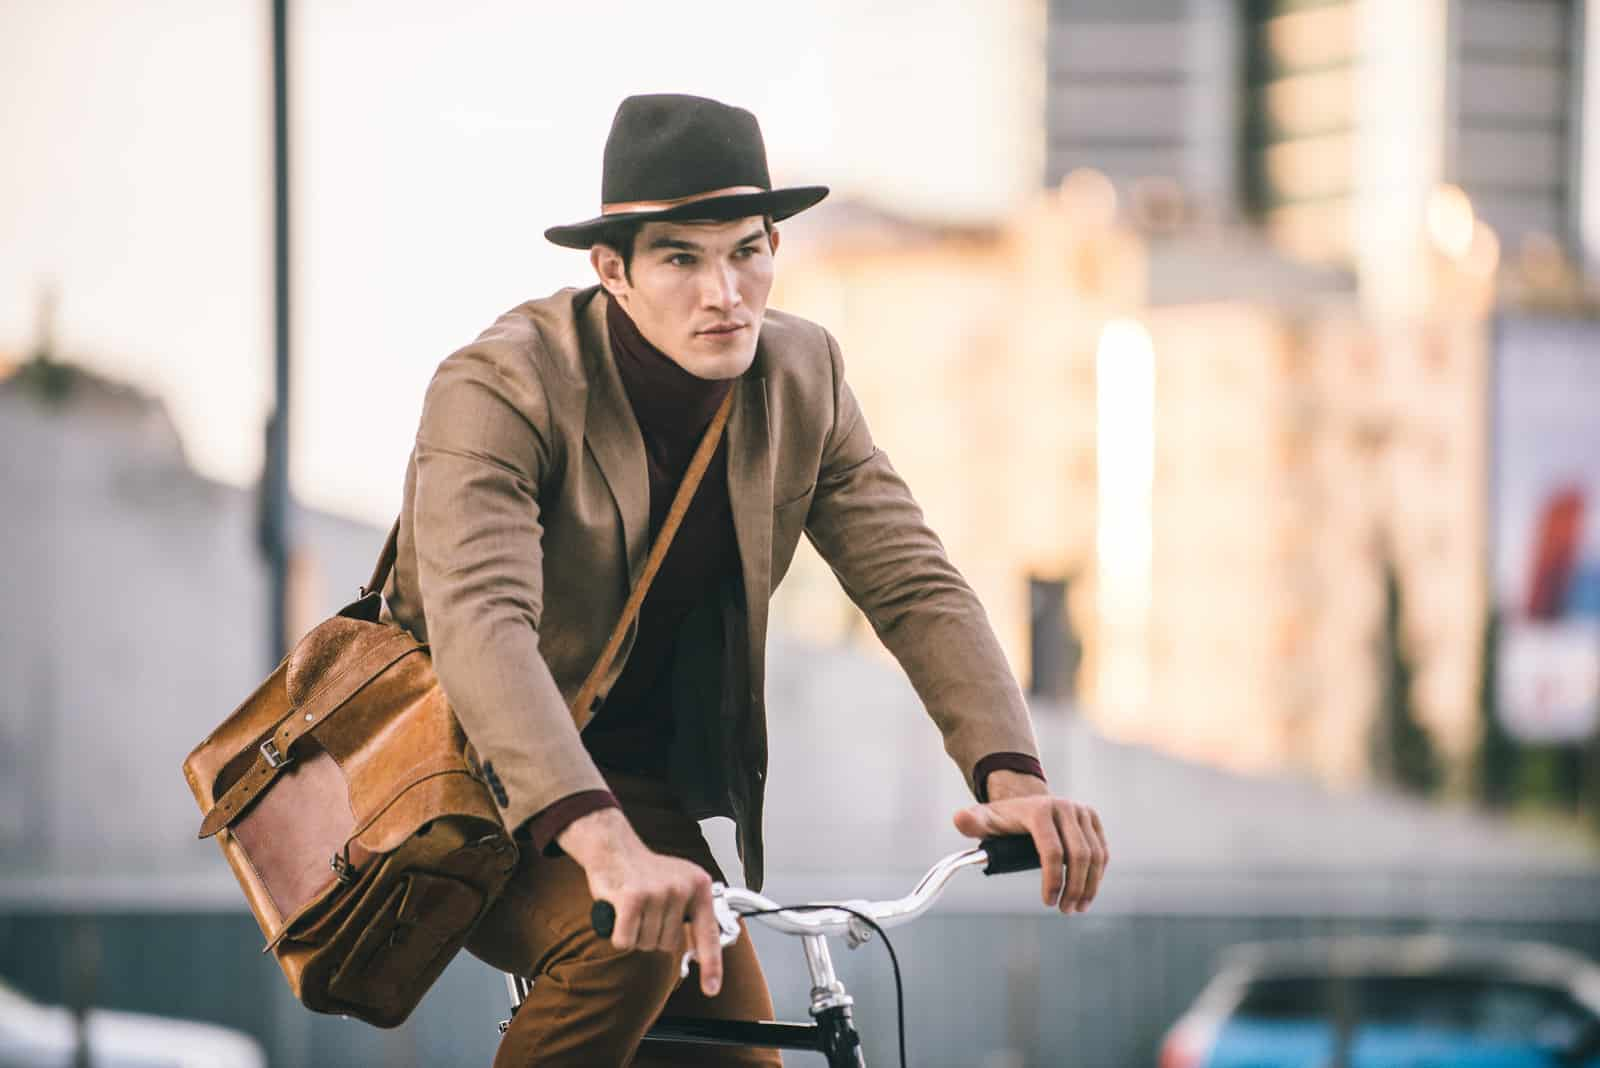 handsome guy with bike messenger bags